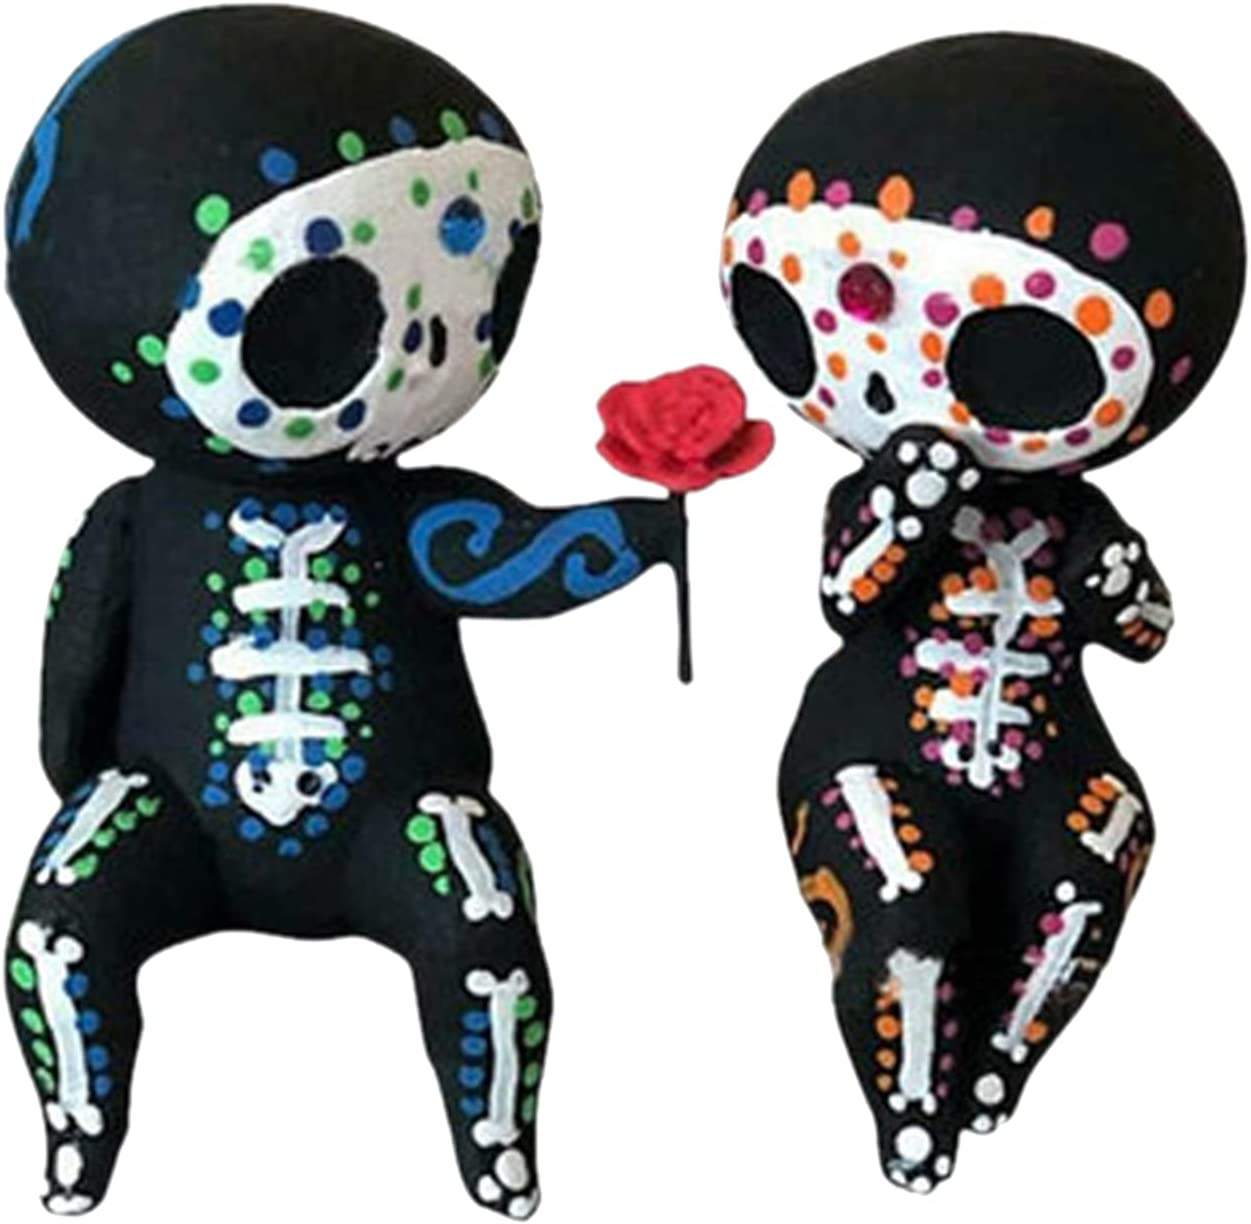 Special sale item Clearance SALE! Limited time! MagiDeal Resin Sugar Skull Figurine Display Statue Cr Miniatures